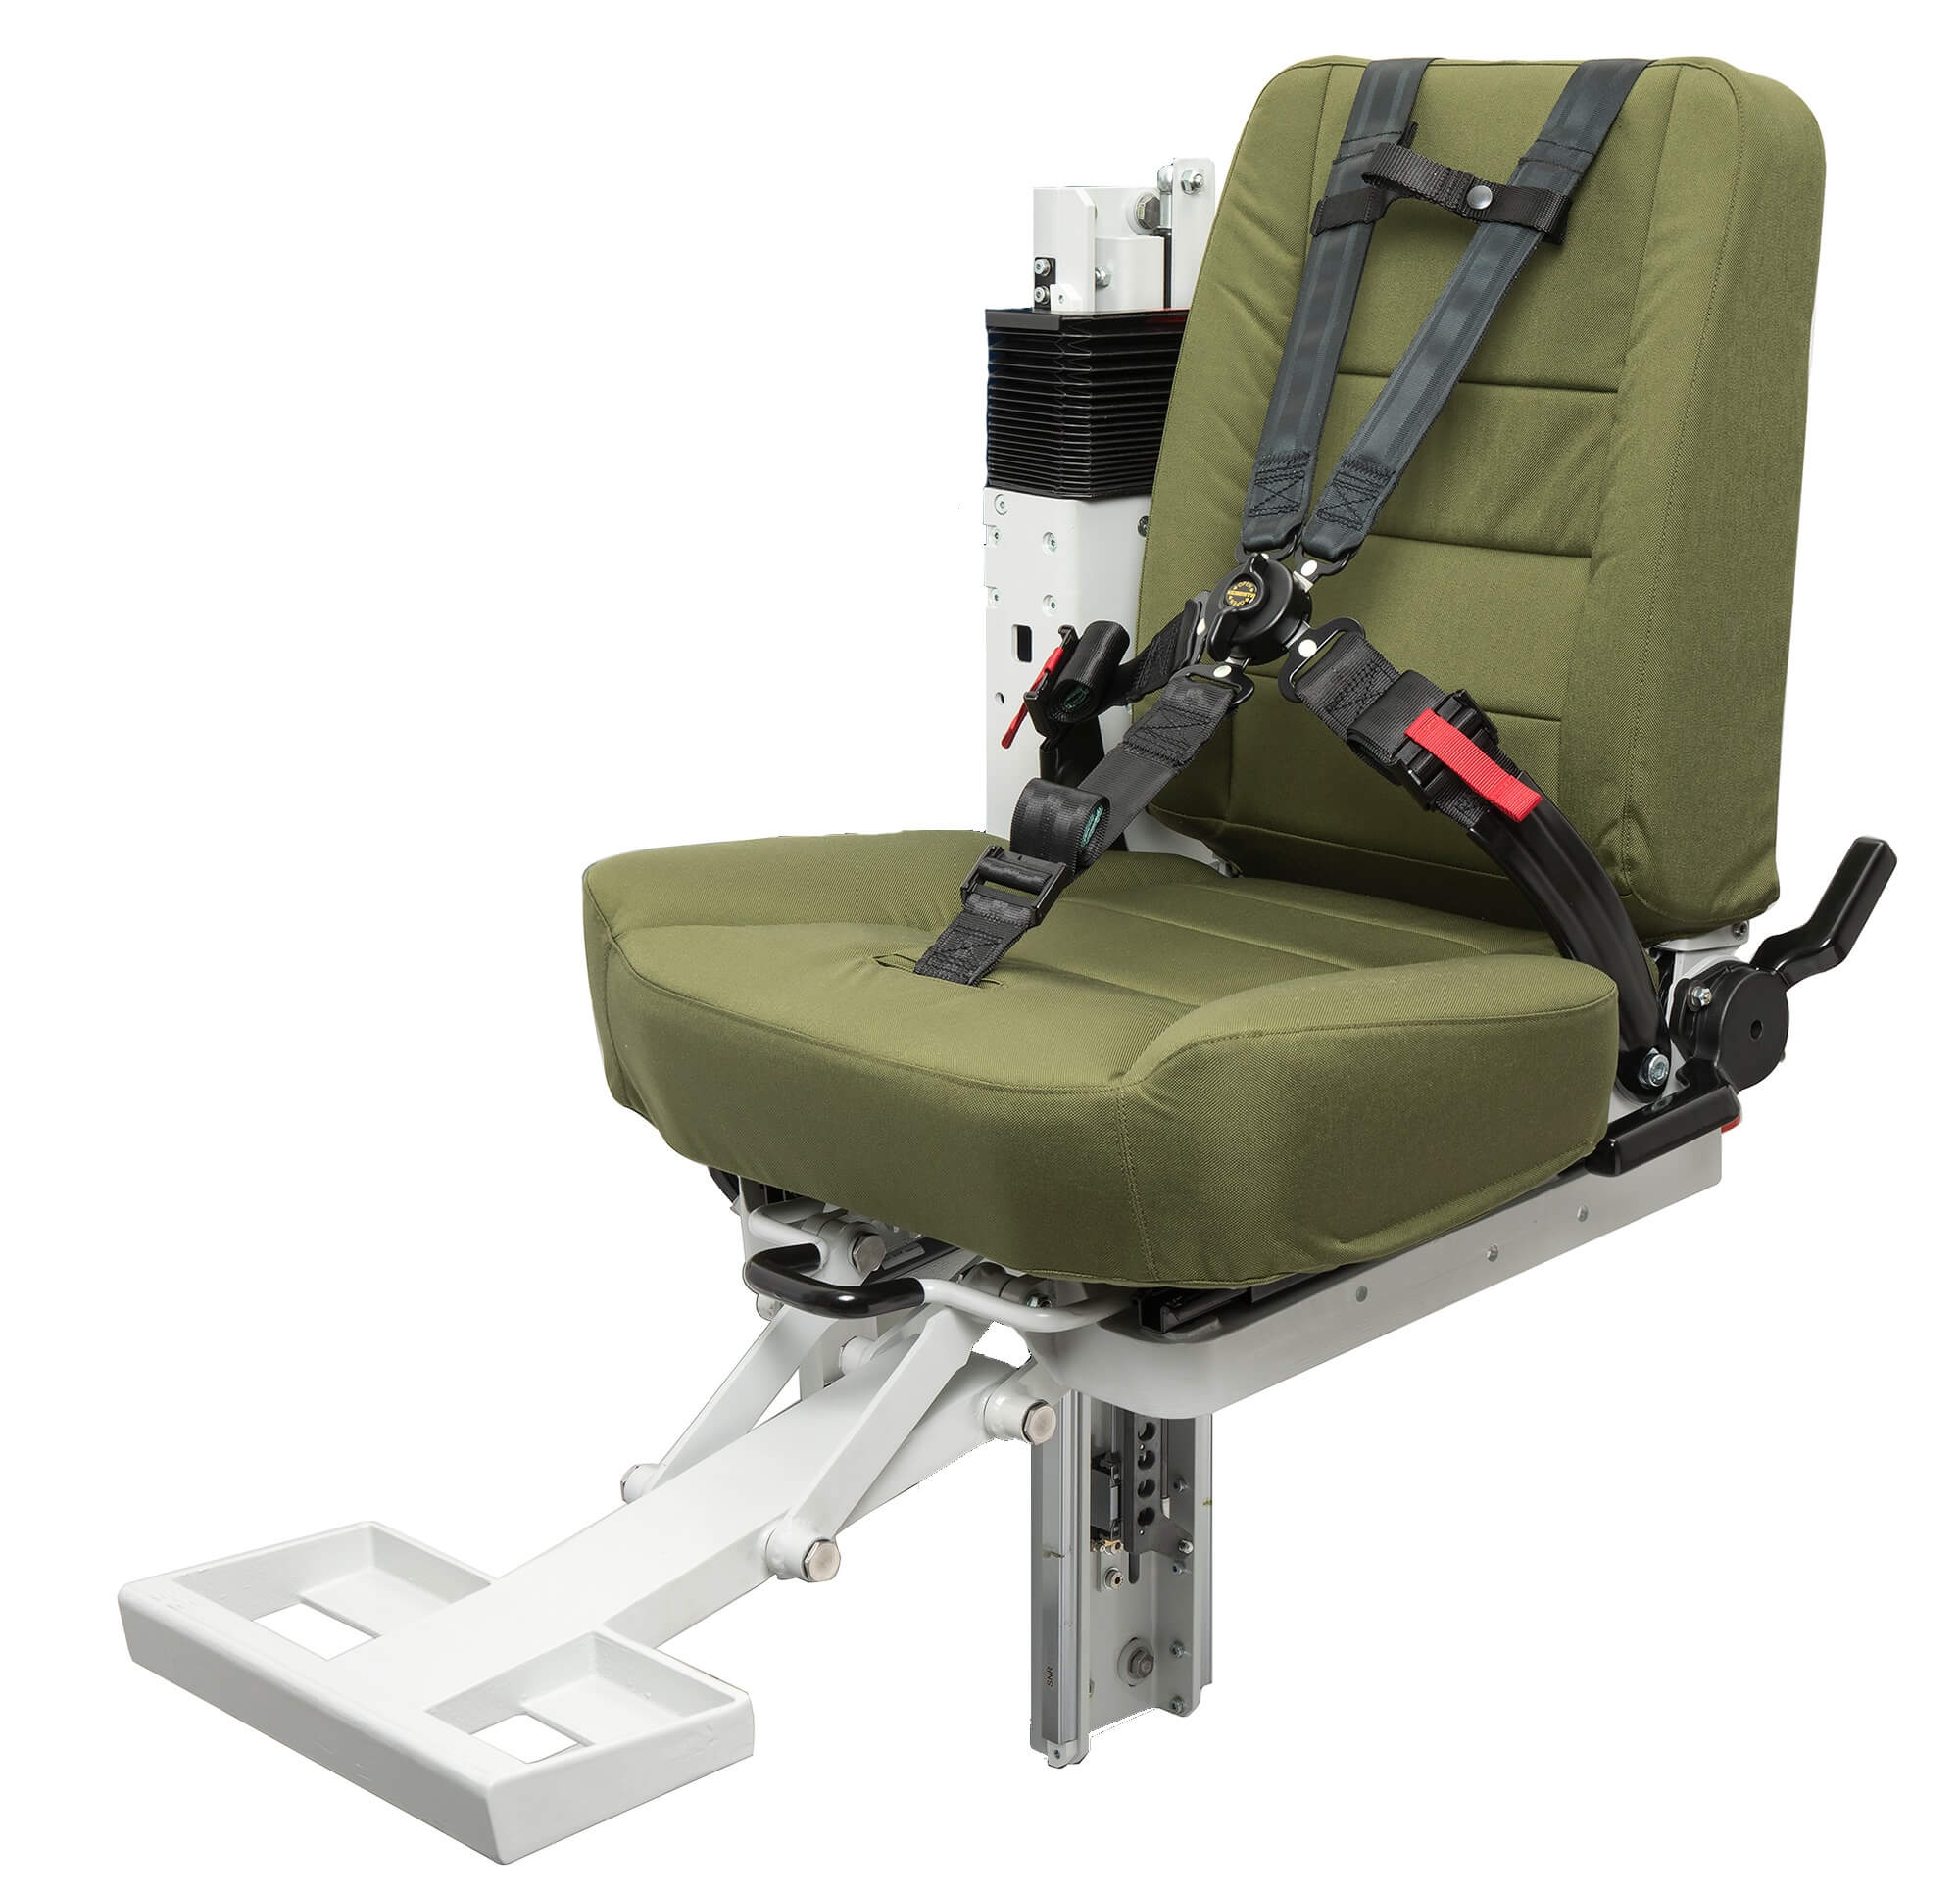 Essentials of Military Seat Belts – MOBIUS Protection System